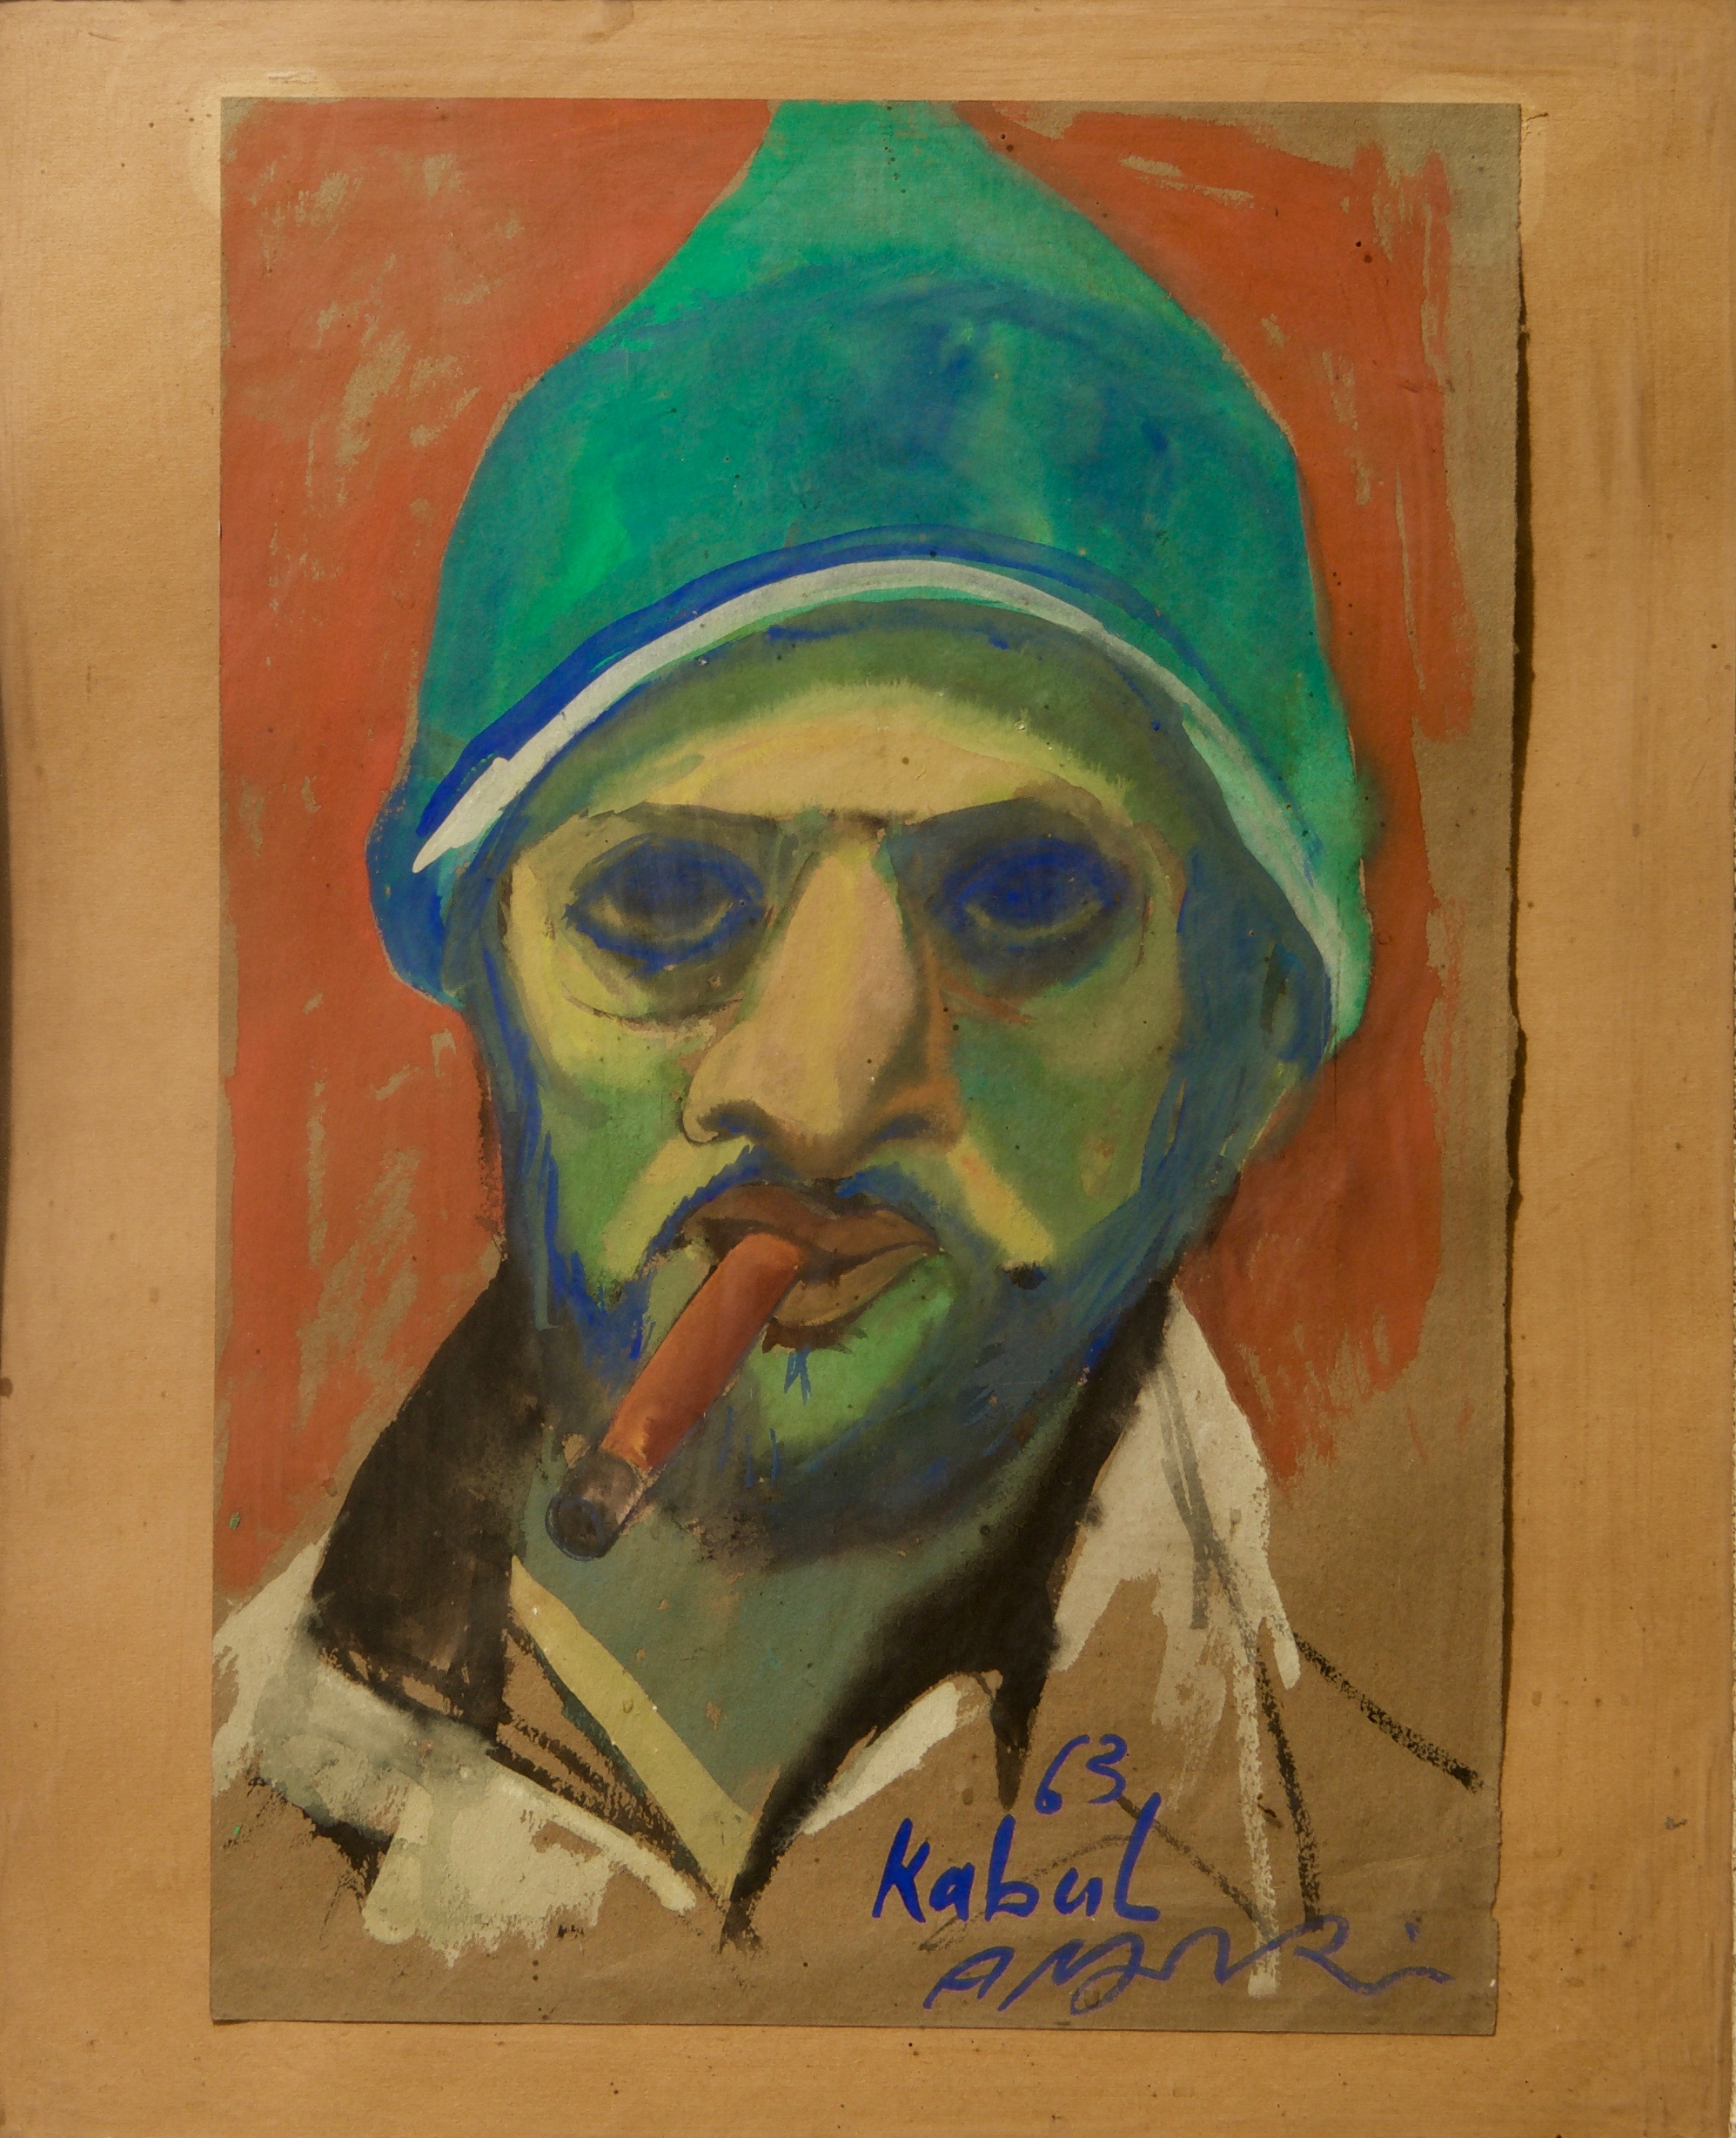 Ahmed-Morsi-Self-Portrait-Kabul-1963.jpg